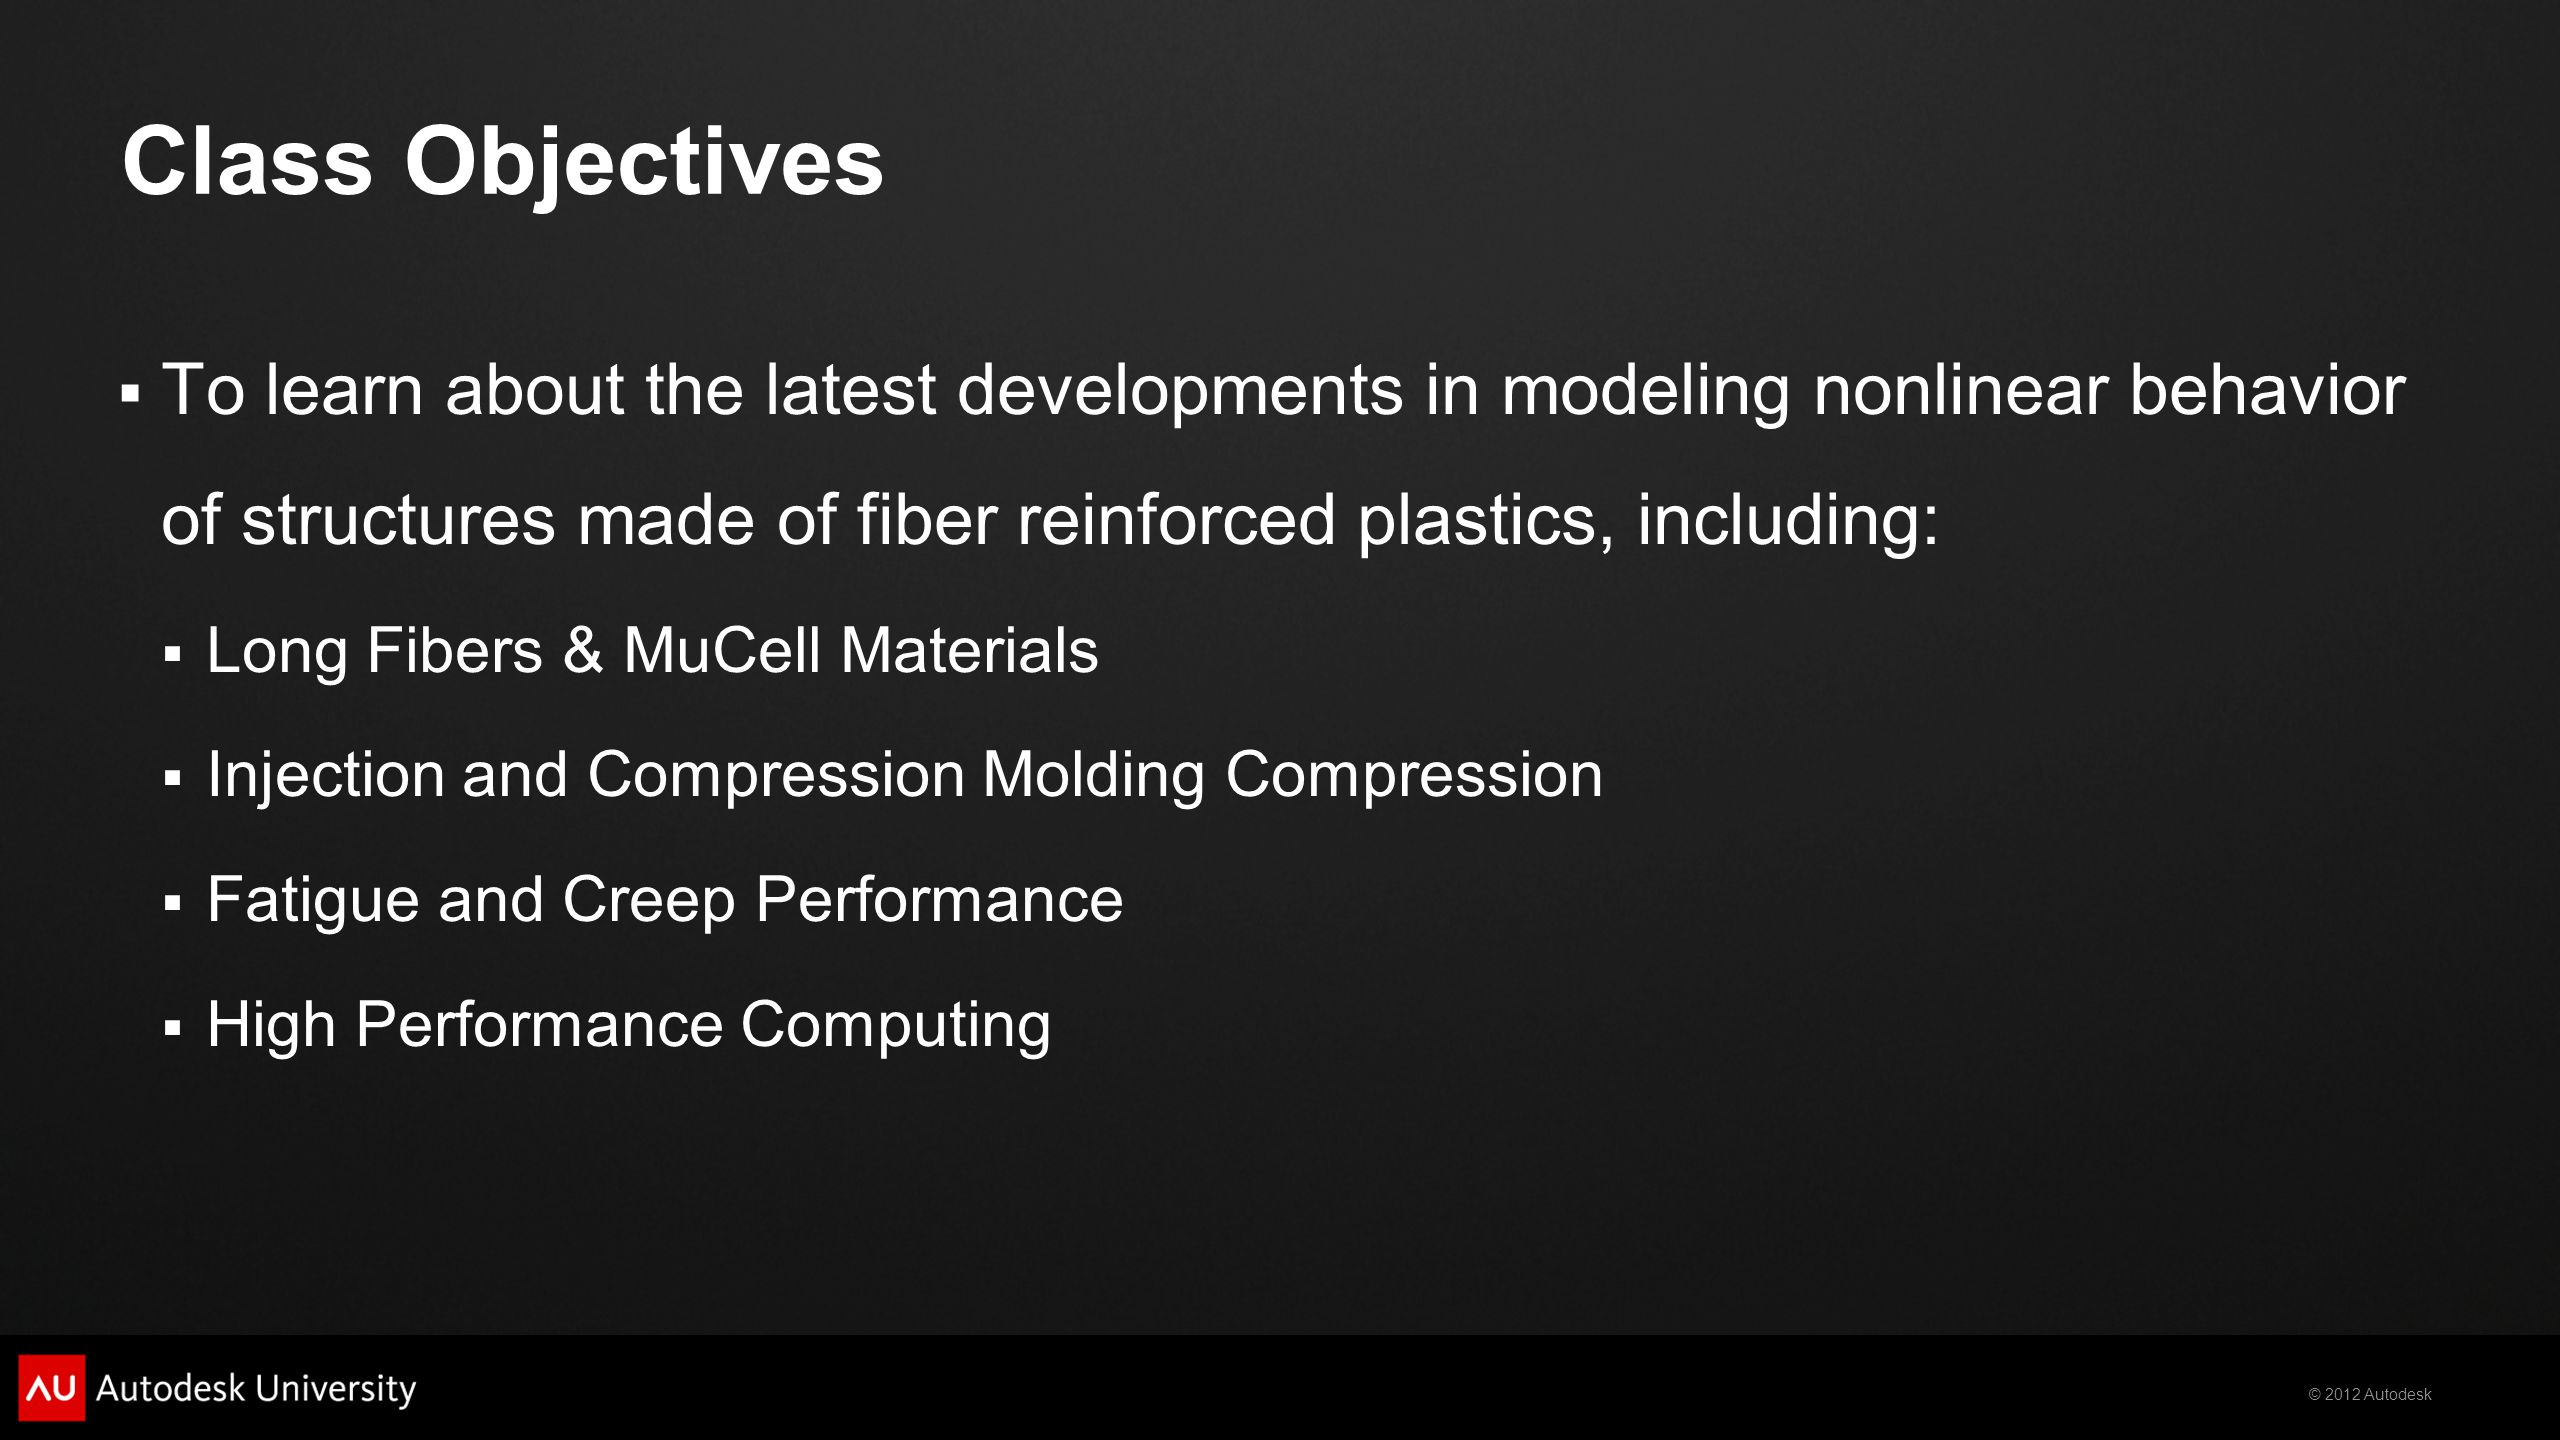 Class Objectives To learn about the latest developments in modeling nonlinear behavior of structures made of fiber reinforced plastics, including: